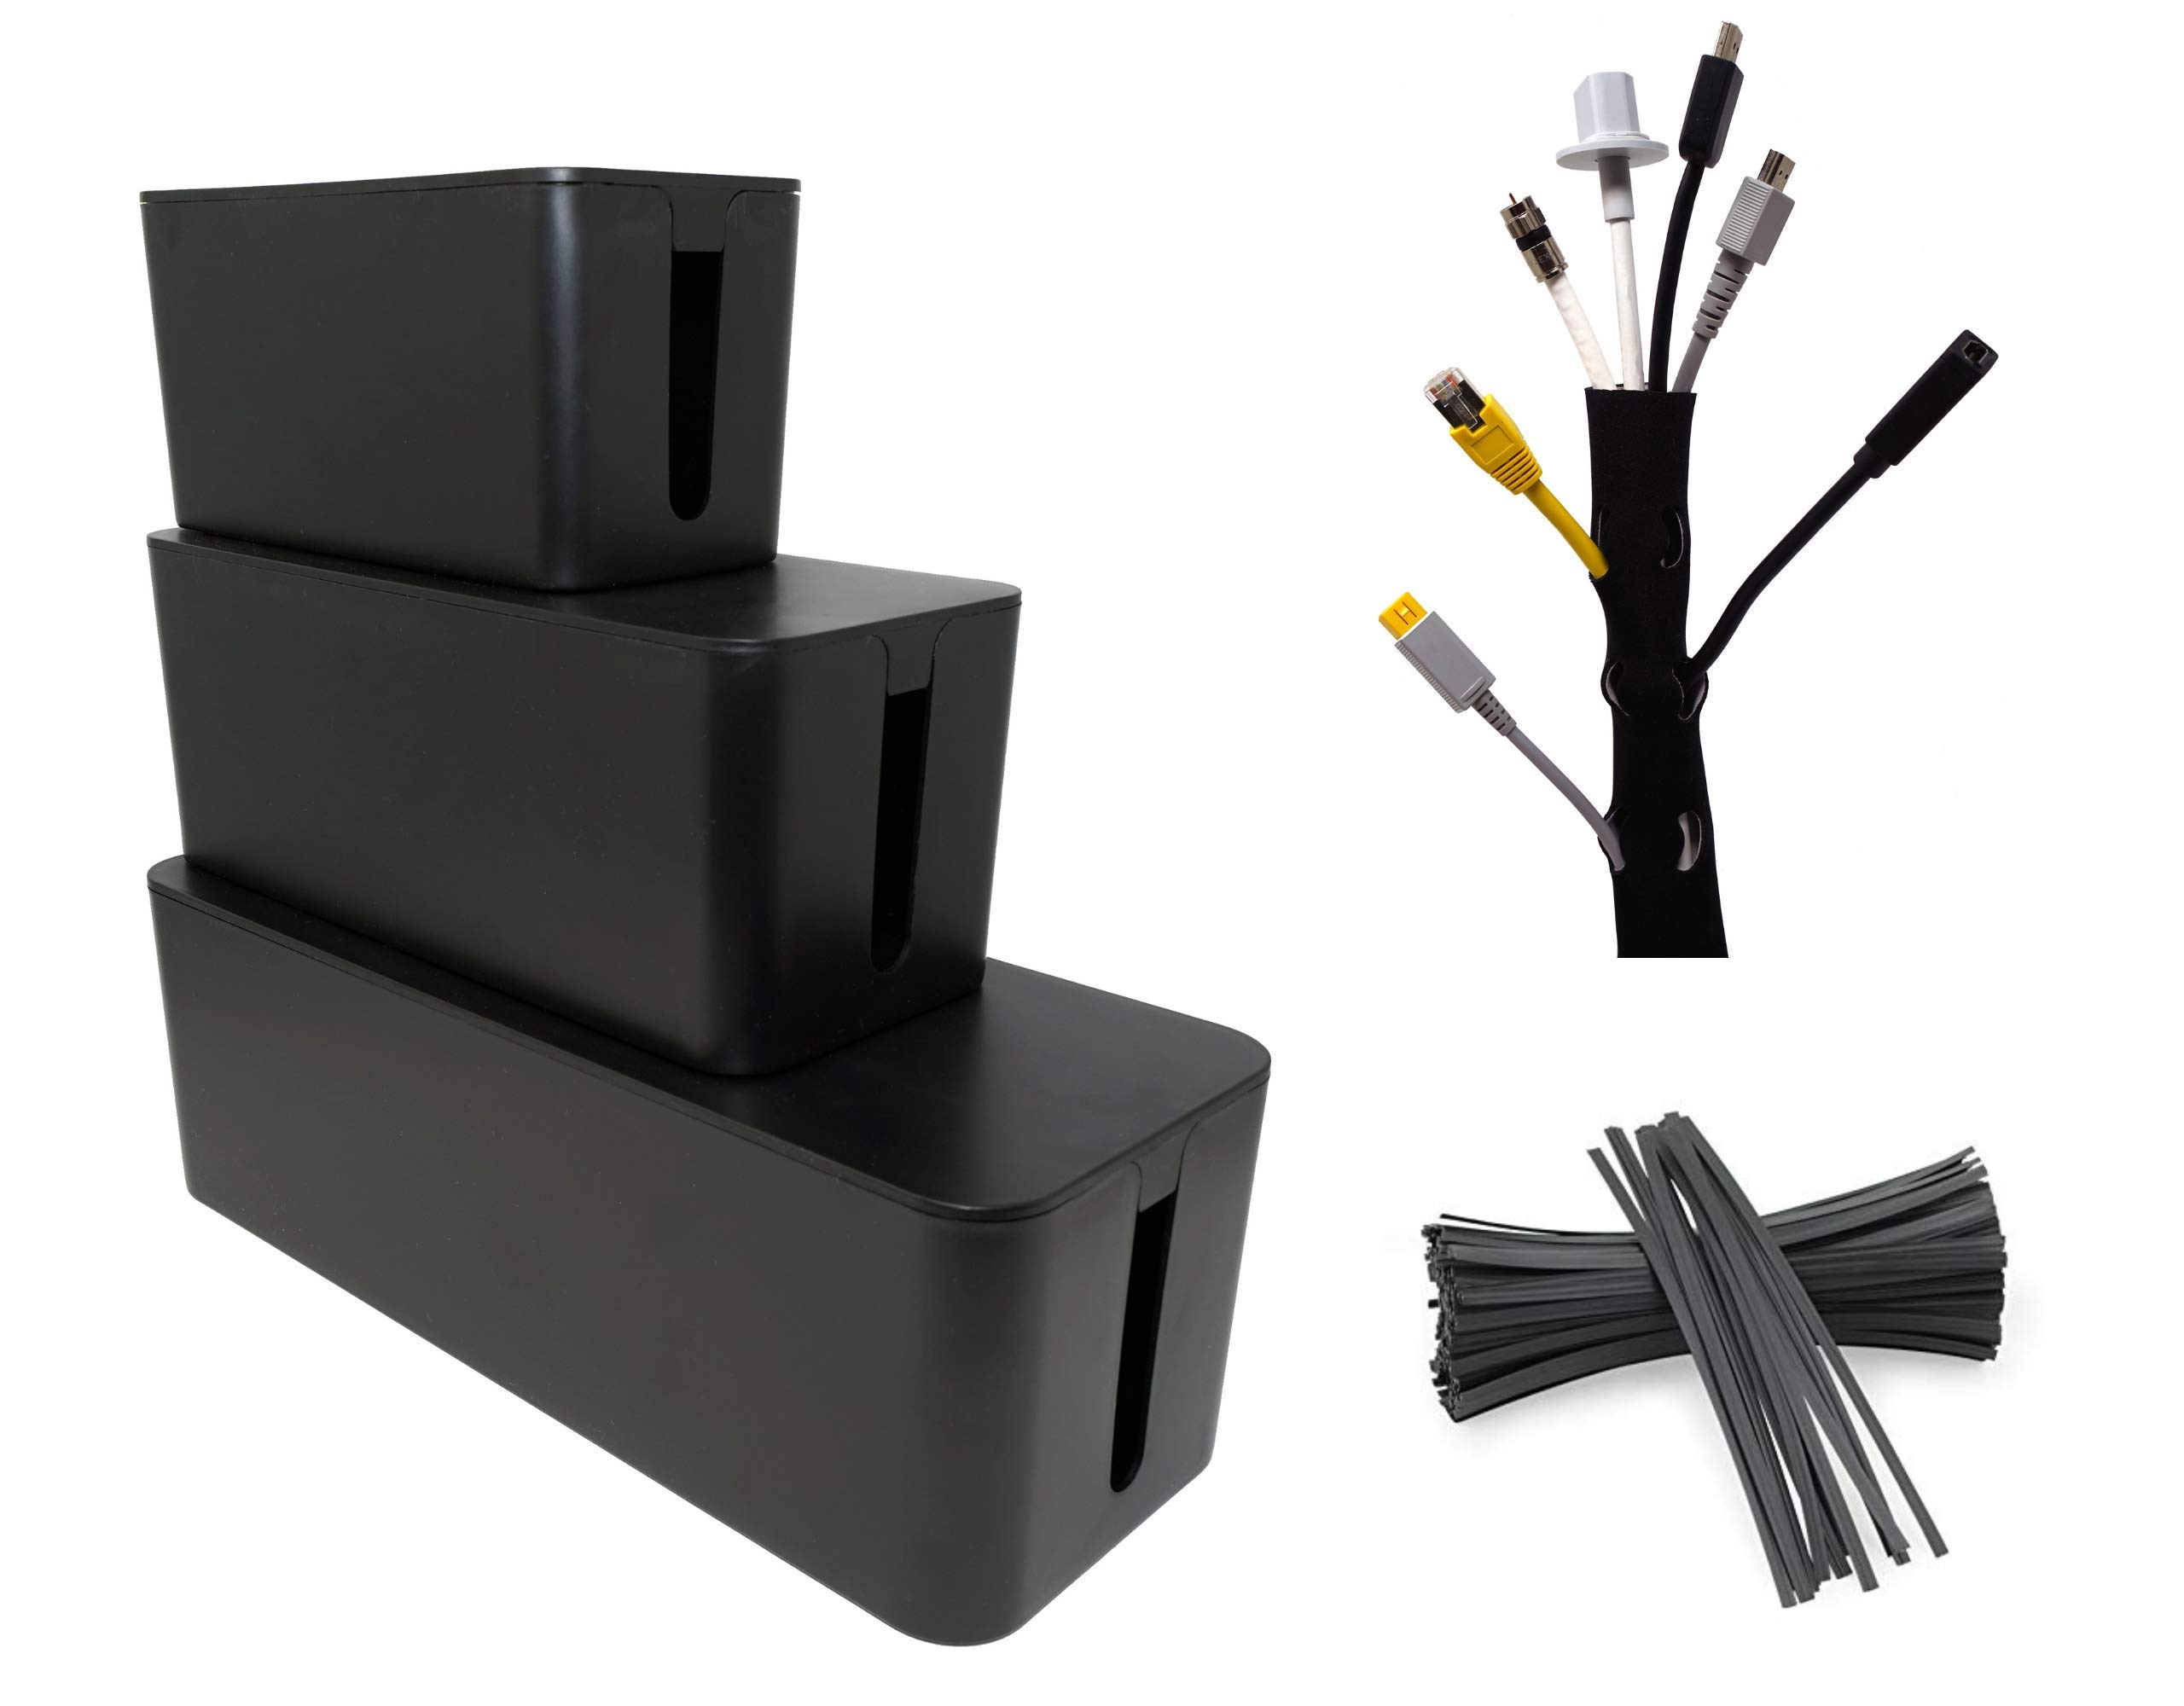 Cable Management Boxes (3-Pack)  w/ 20 Twist Ties and Cable Sleeve | TV and Under Desk Computer Cord Organizer Kit | Hide and Store Wires, Power Strips, USB Hubs by SafeCable (Image #8)